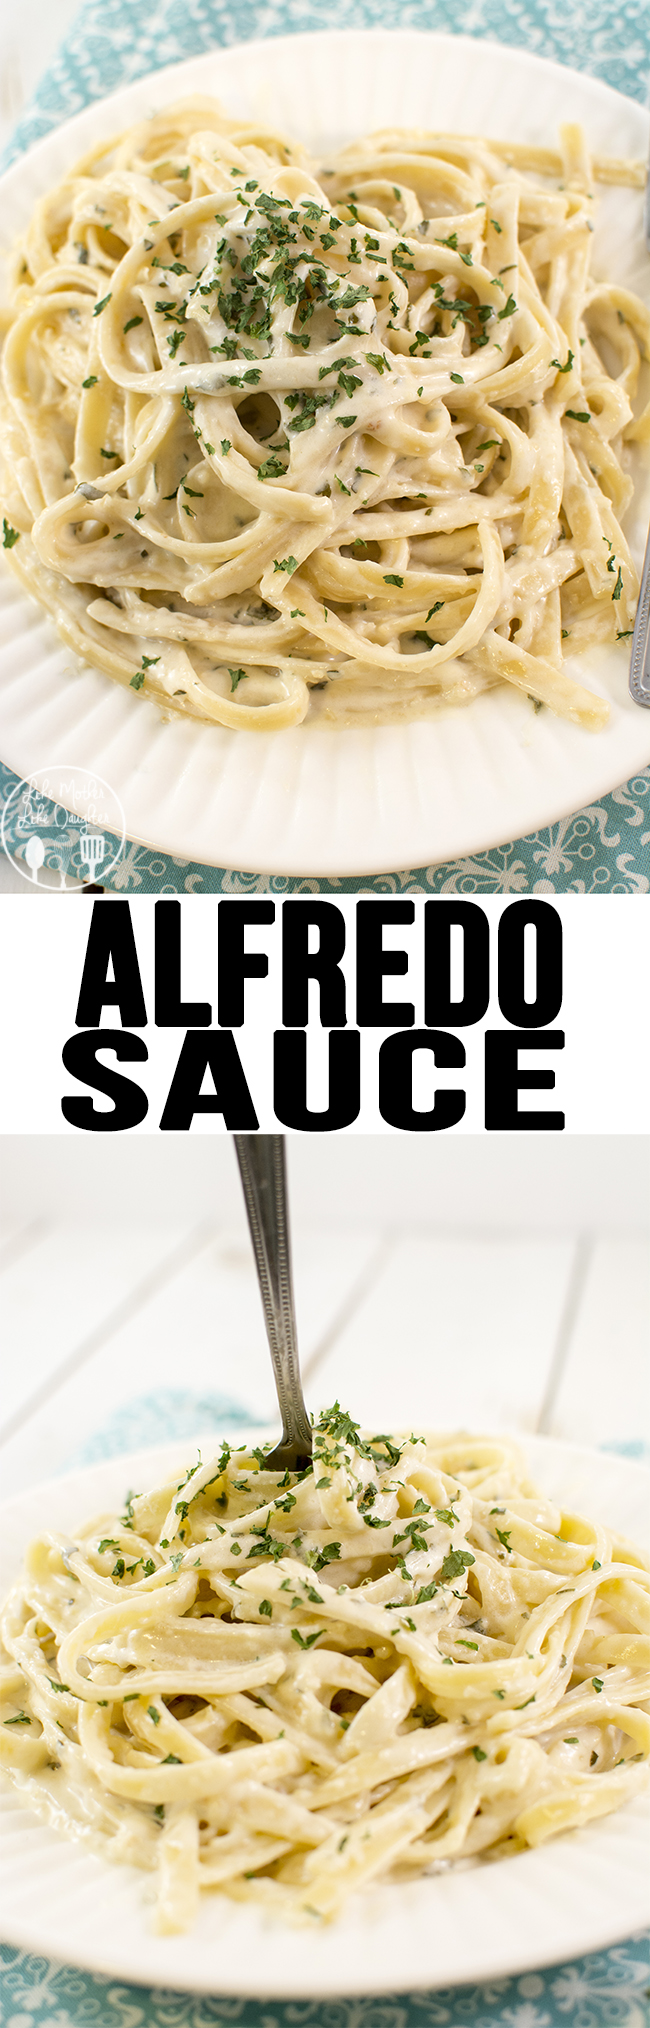 This recipe for alfredo sauce is the best ever. It's thick, rich, and creamy, and only has 4 ingredients! Its perfect with so many of your favorite dishes!